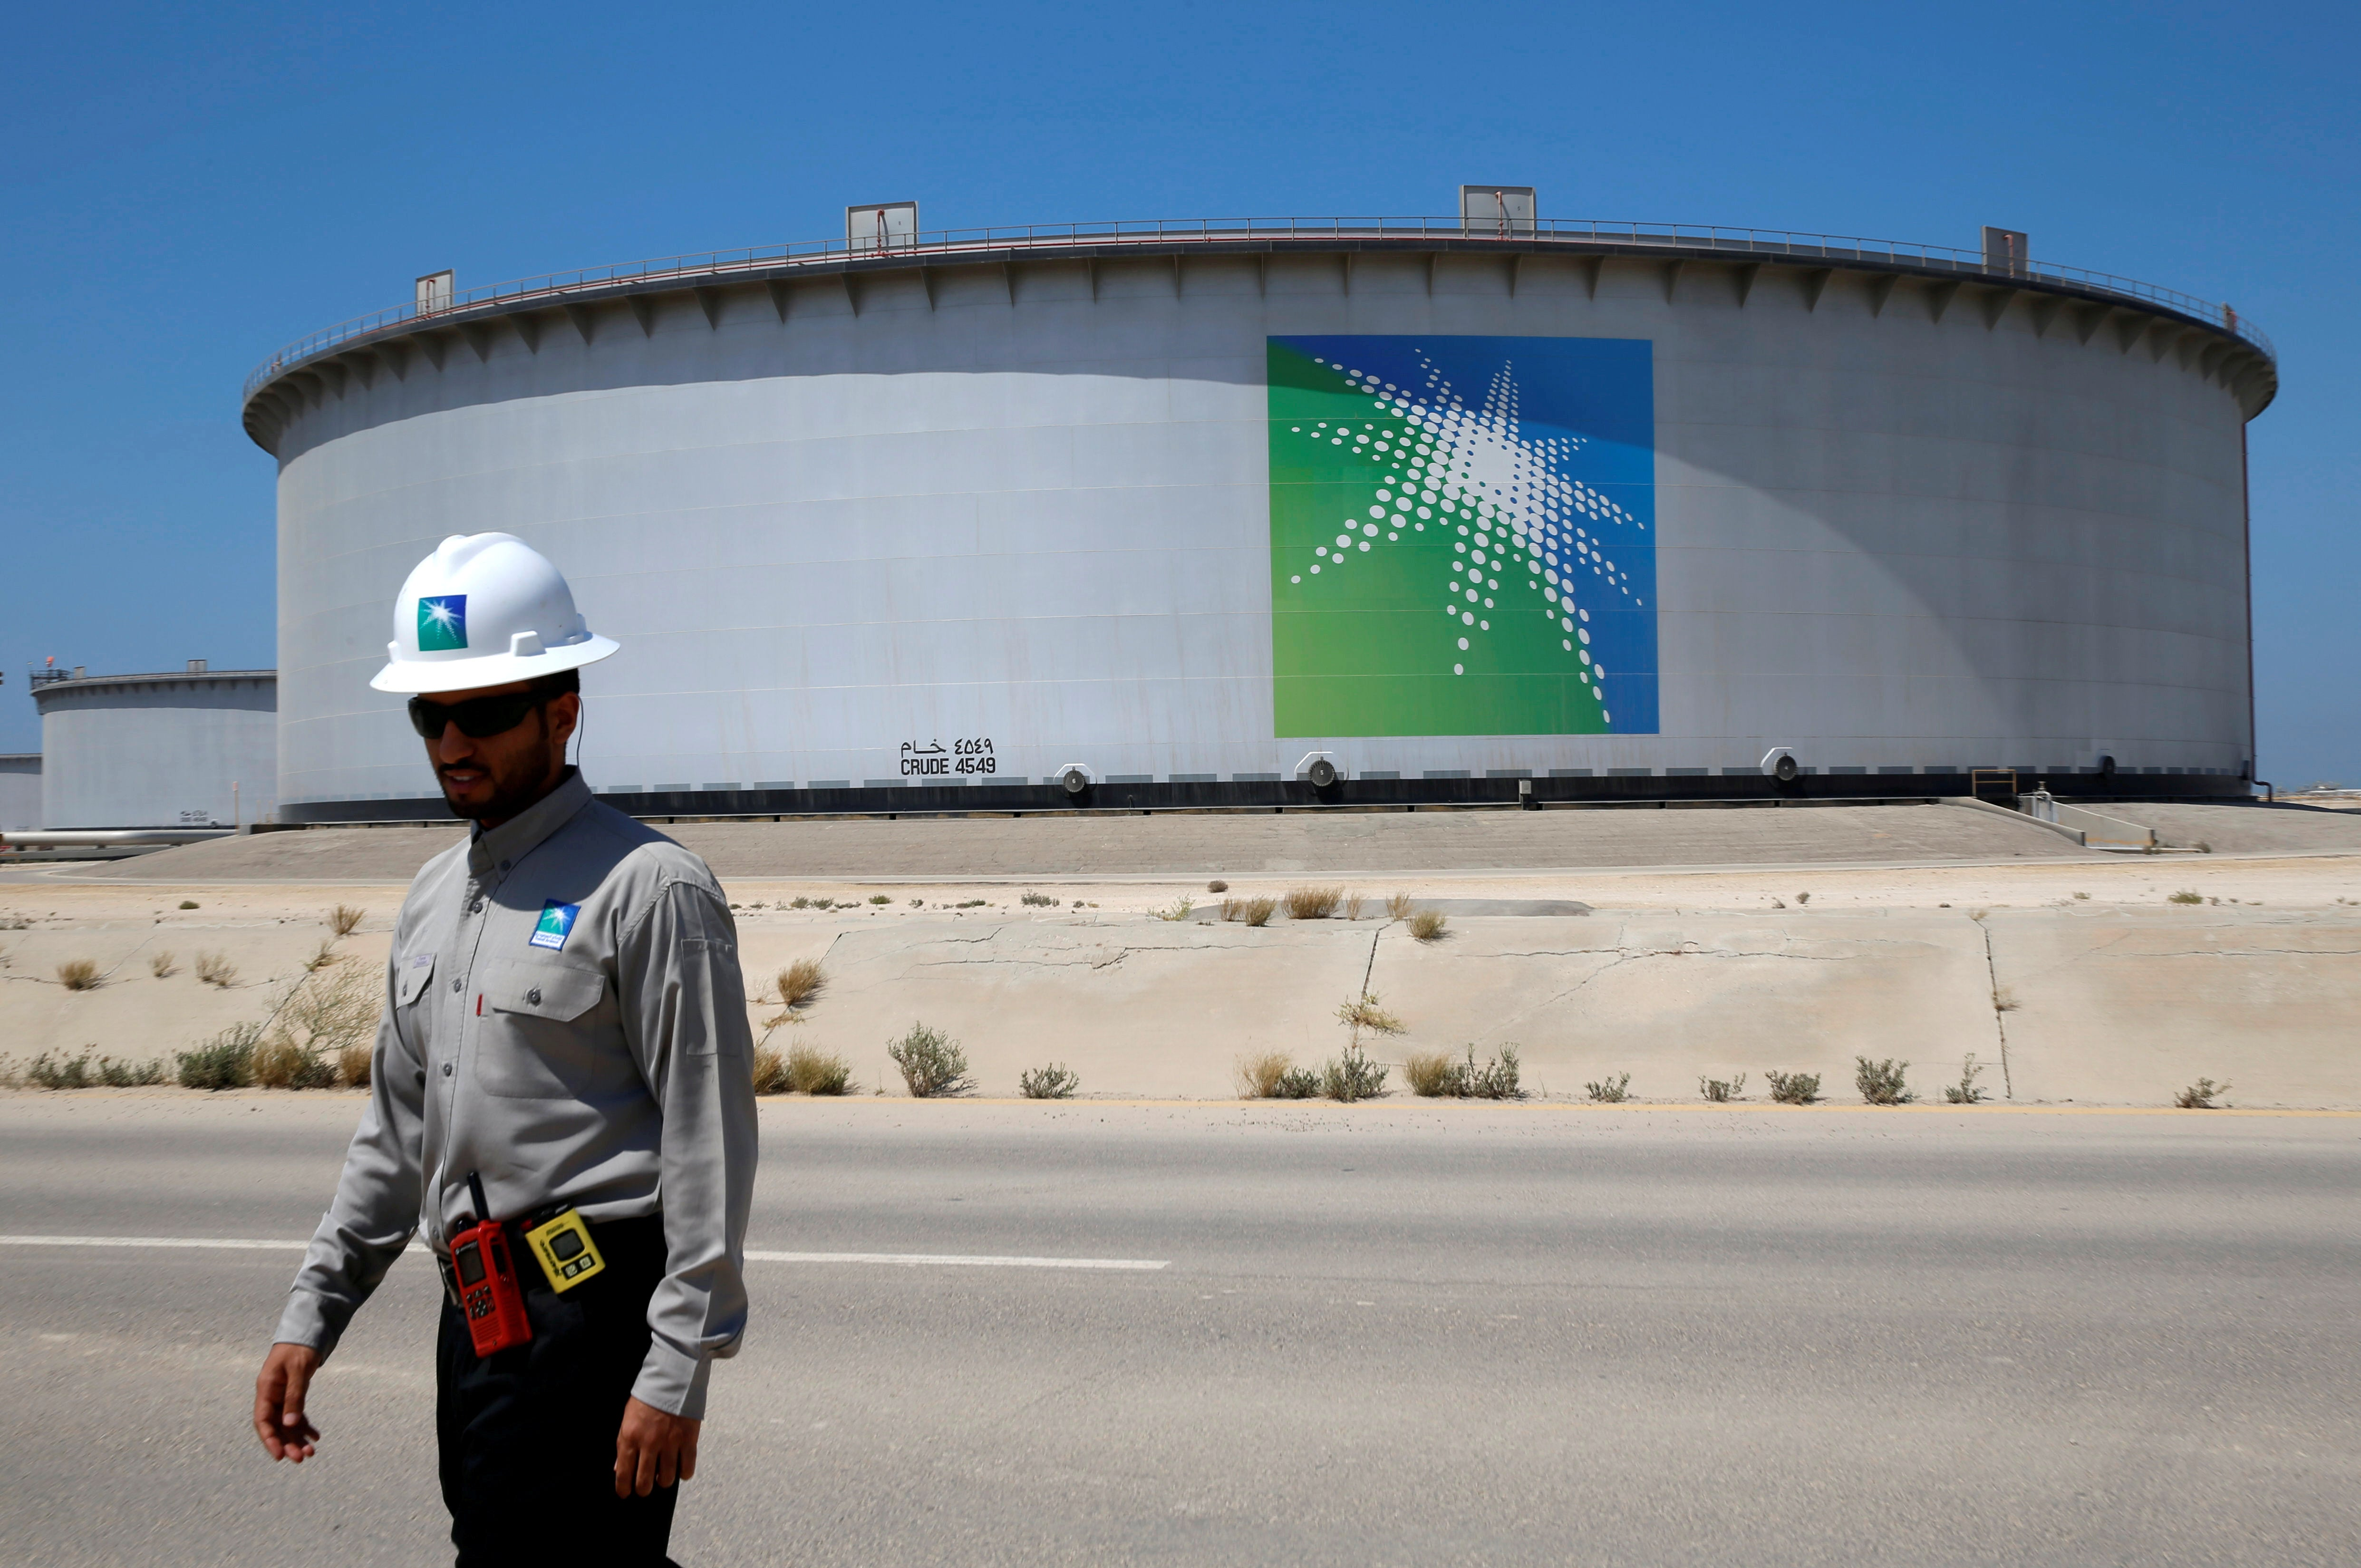 A ban in front of an oil tank with the Aramco logo on it.